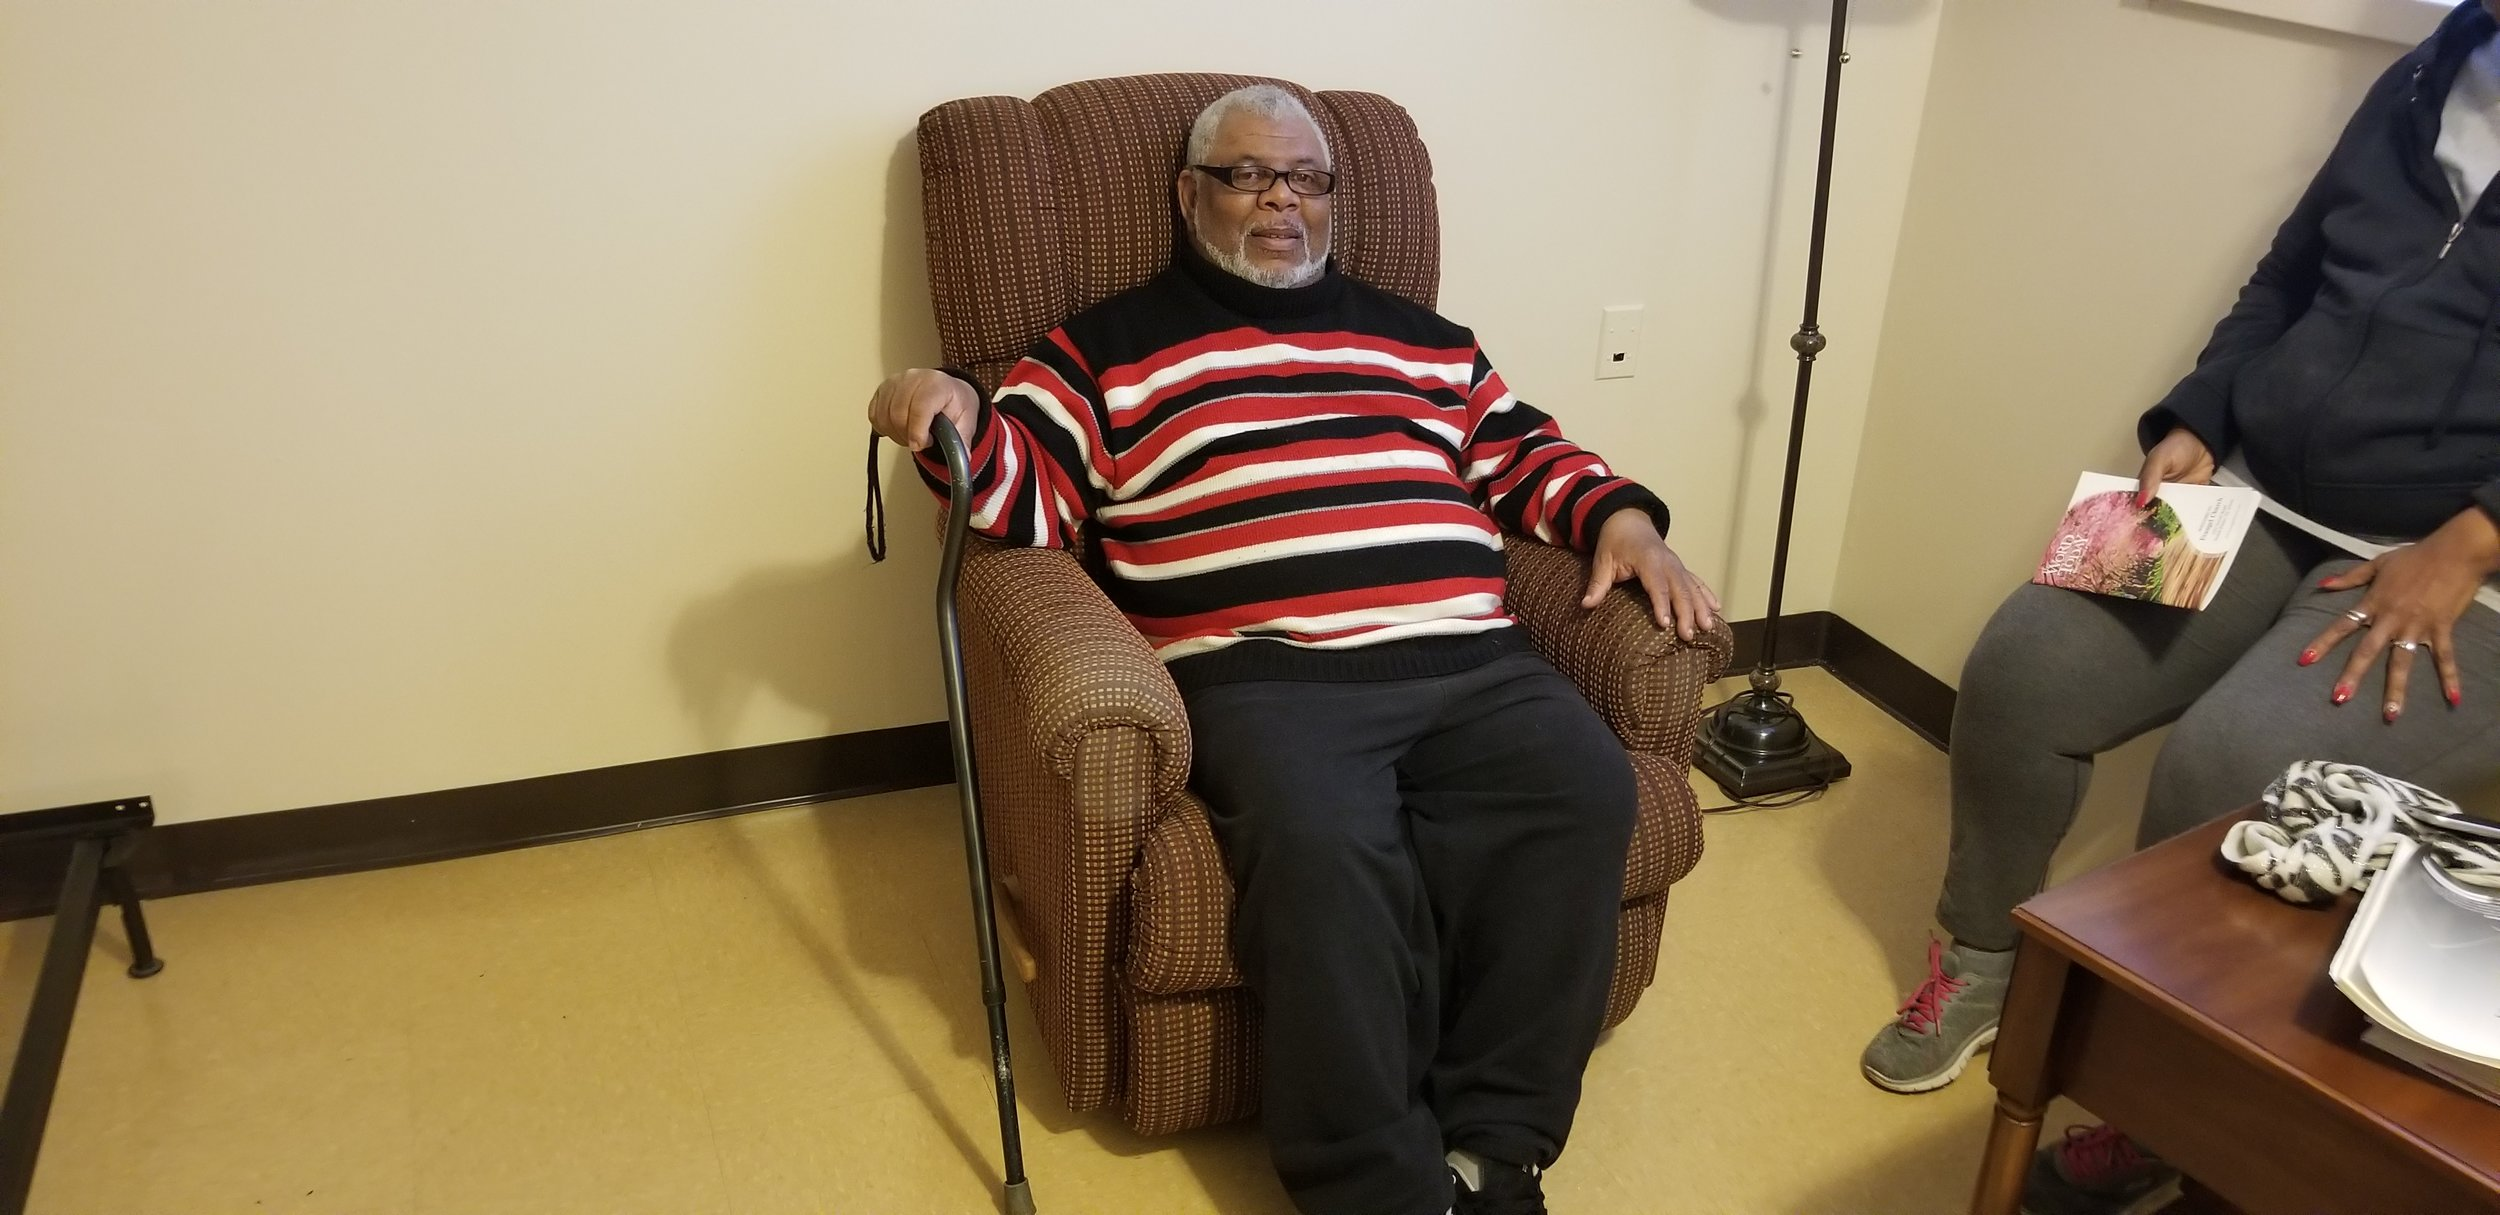 When I was in need of furniture for my new apartment, the Family Assistance Resource Center NJ (FARC) answered my call and completely furnished my apartment. They also gave me this recliner and a flat screen television. Thank You FARC!